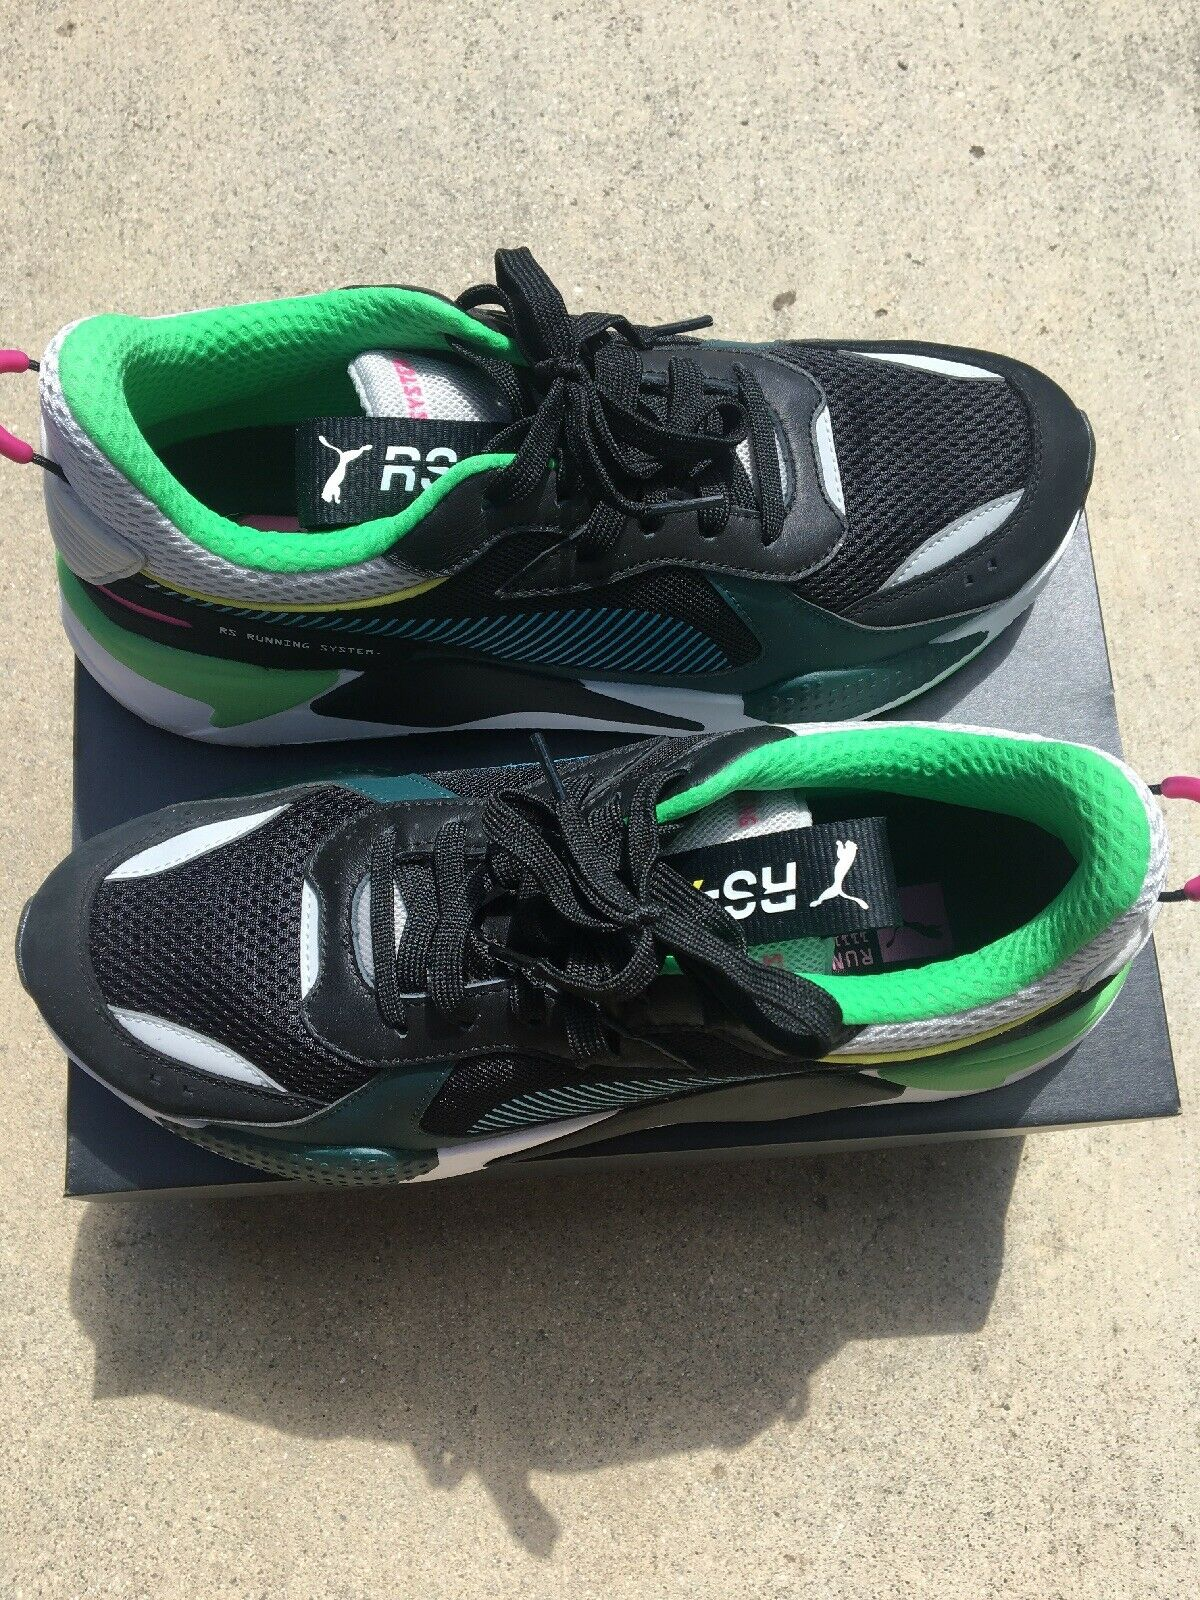 shoes PUMA RS Tuning men SystemSystemSystemrunning OikXTlwZPu